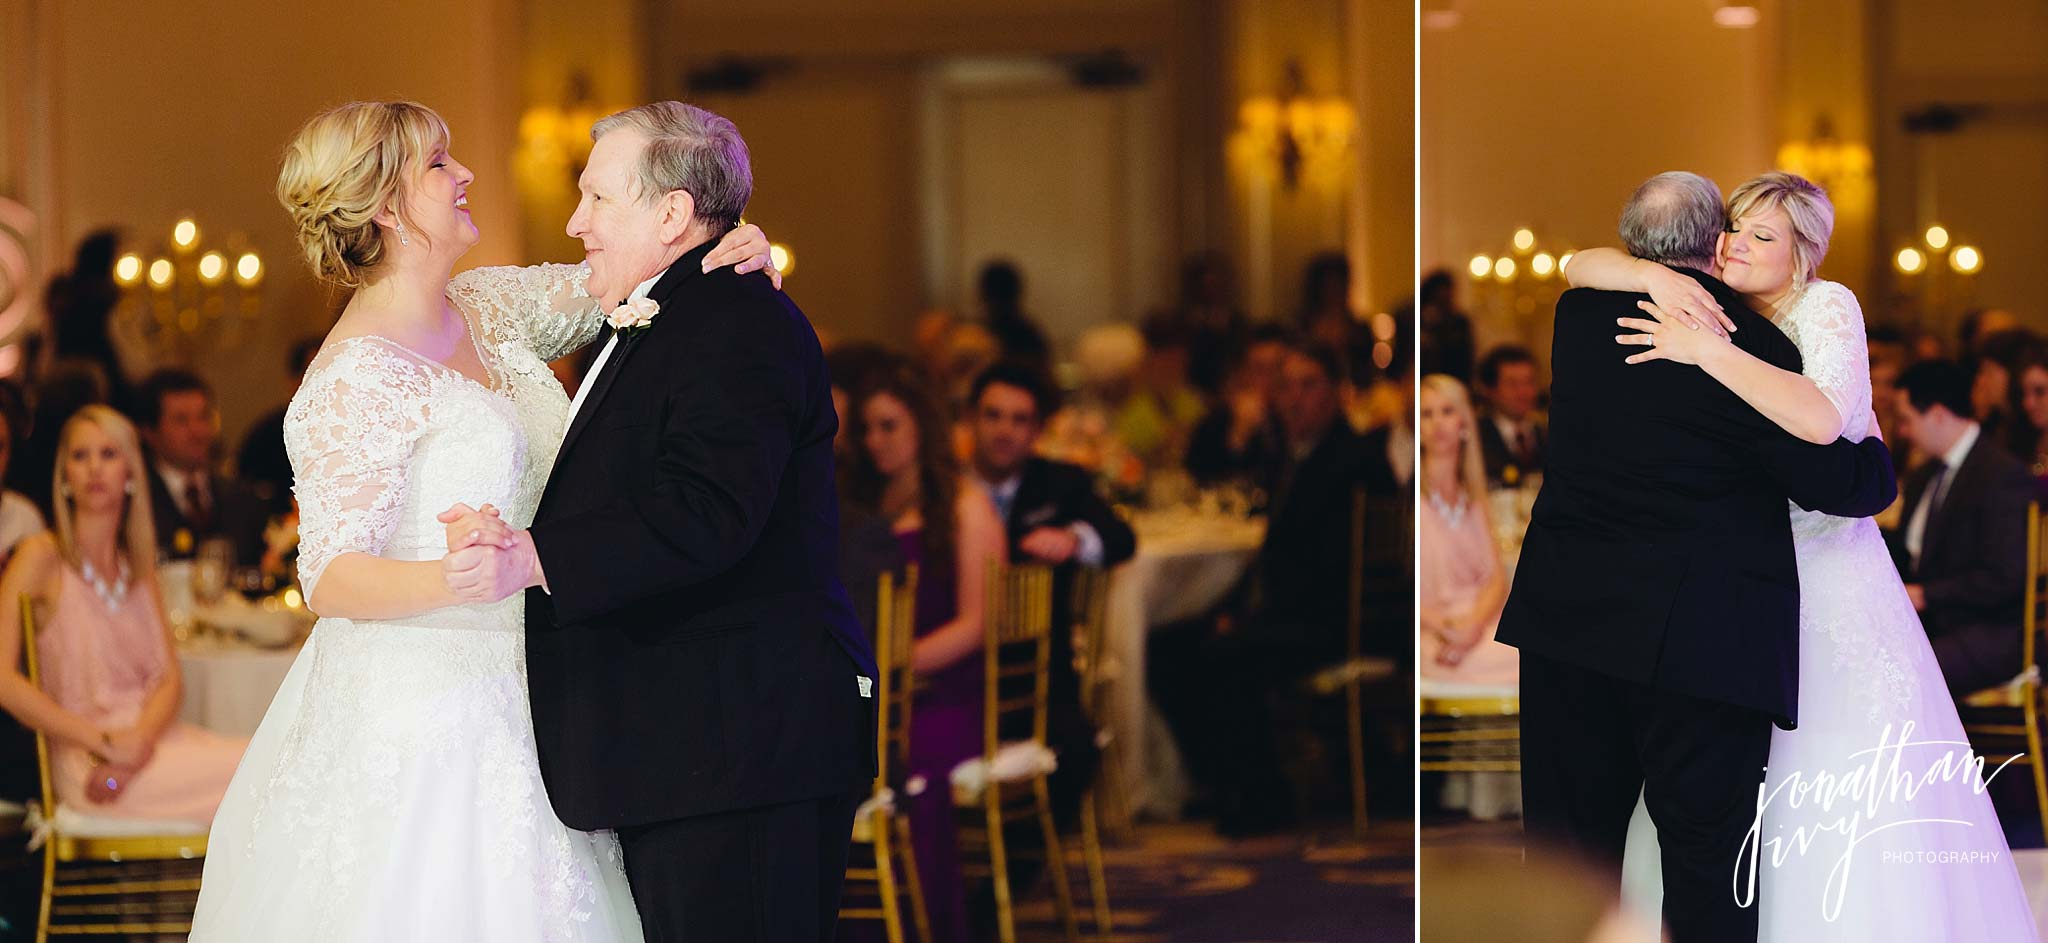 The Houstonian Hotel Wedding in the Grande Ballroom